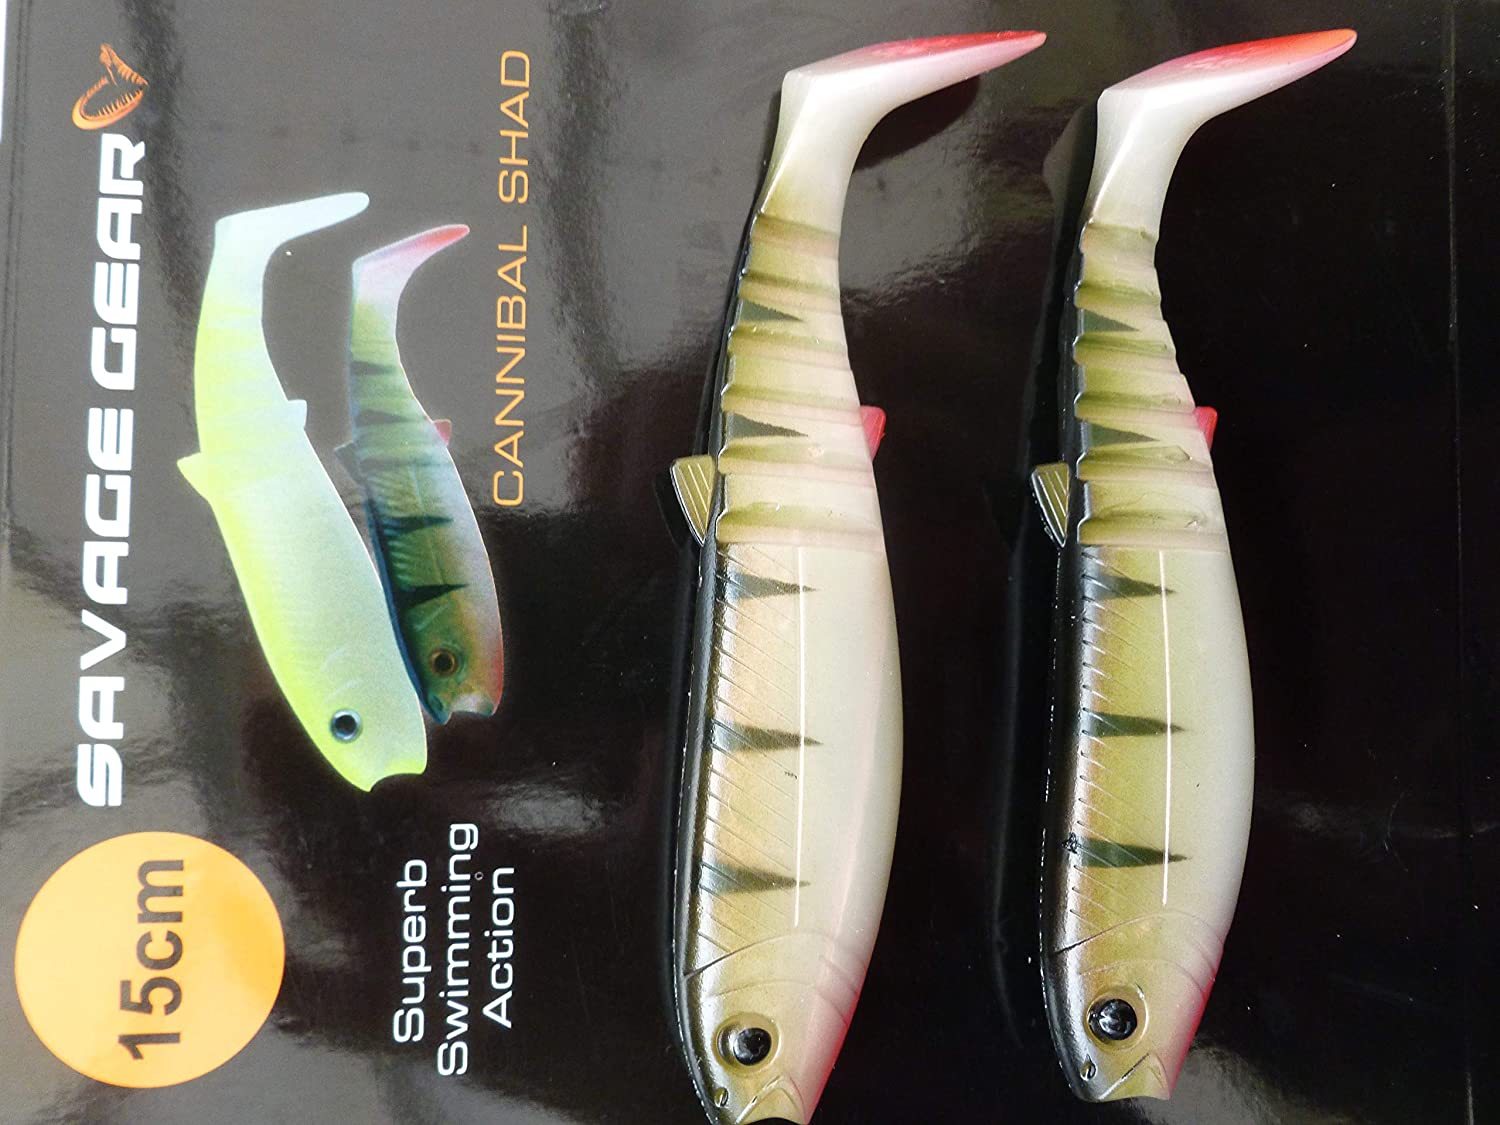 Artificial Rooster Tail Trout Spinner Fake Fishing Lures Heart Service 2Pcs Plastic Simulation Small Fish Baits Random Color